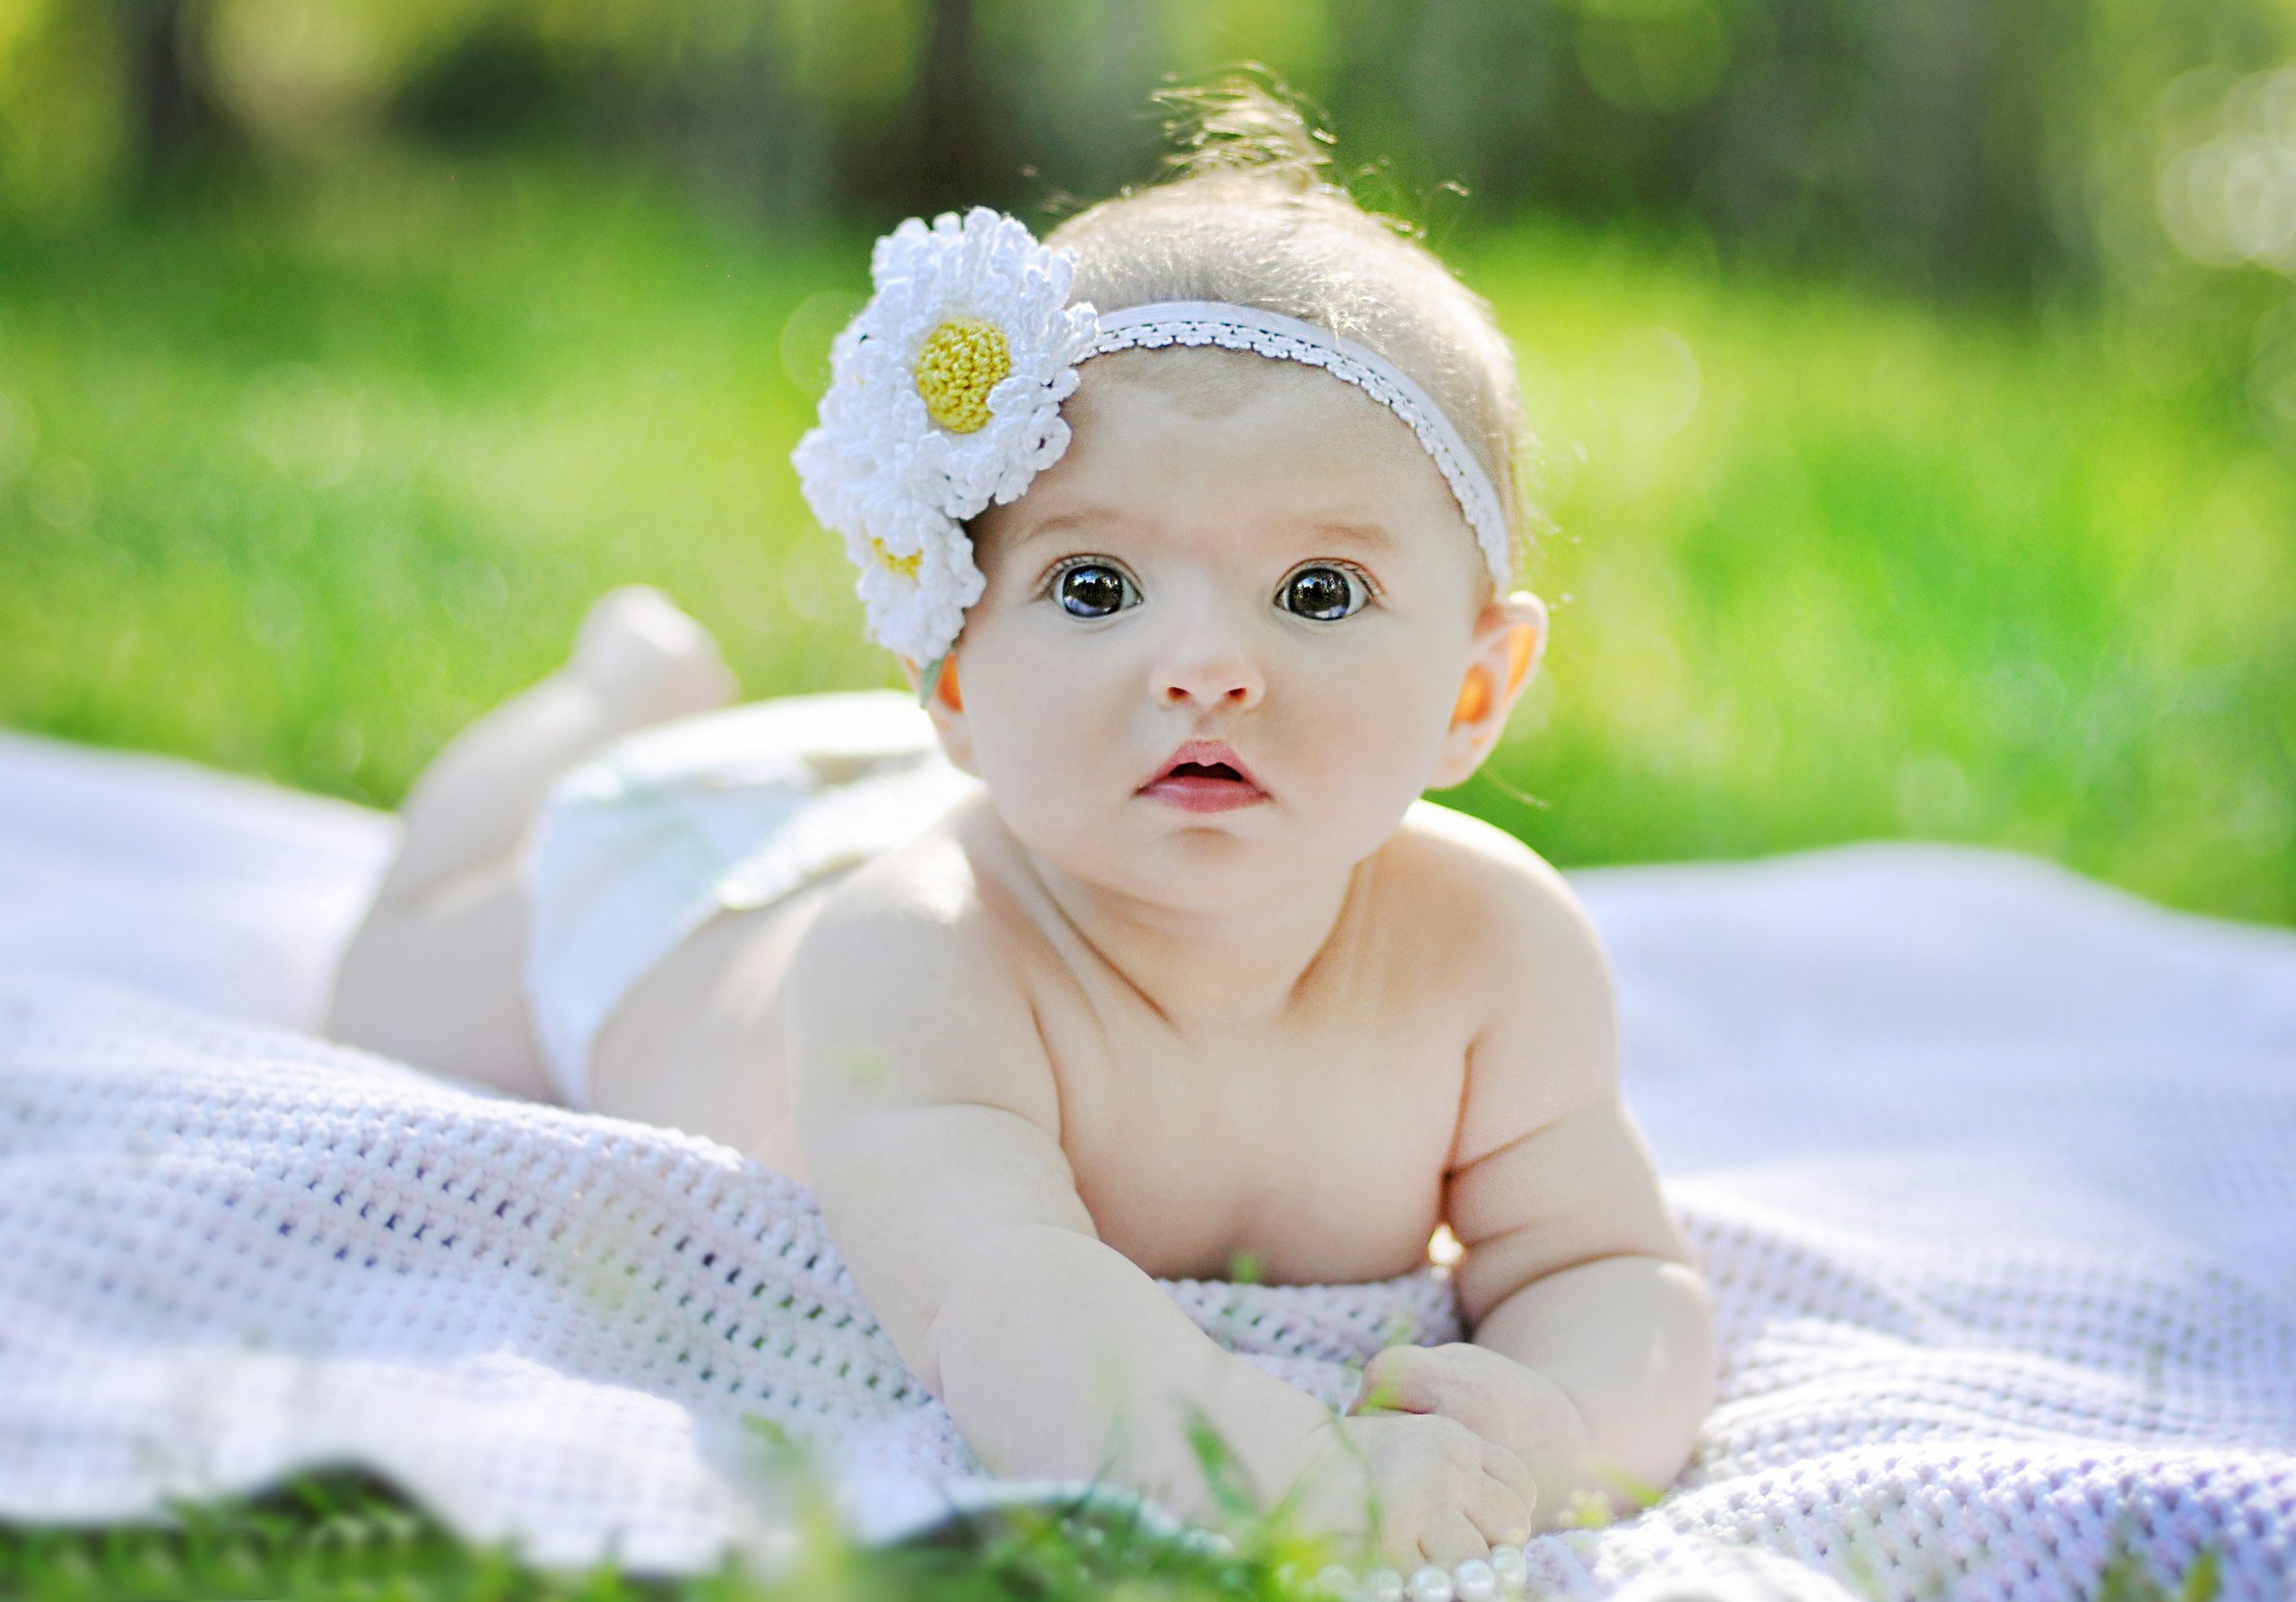 baby girl wallpaper images (70+ images)